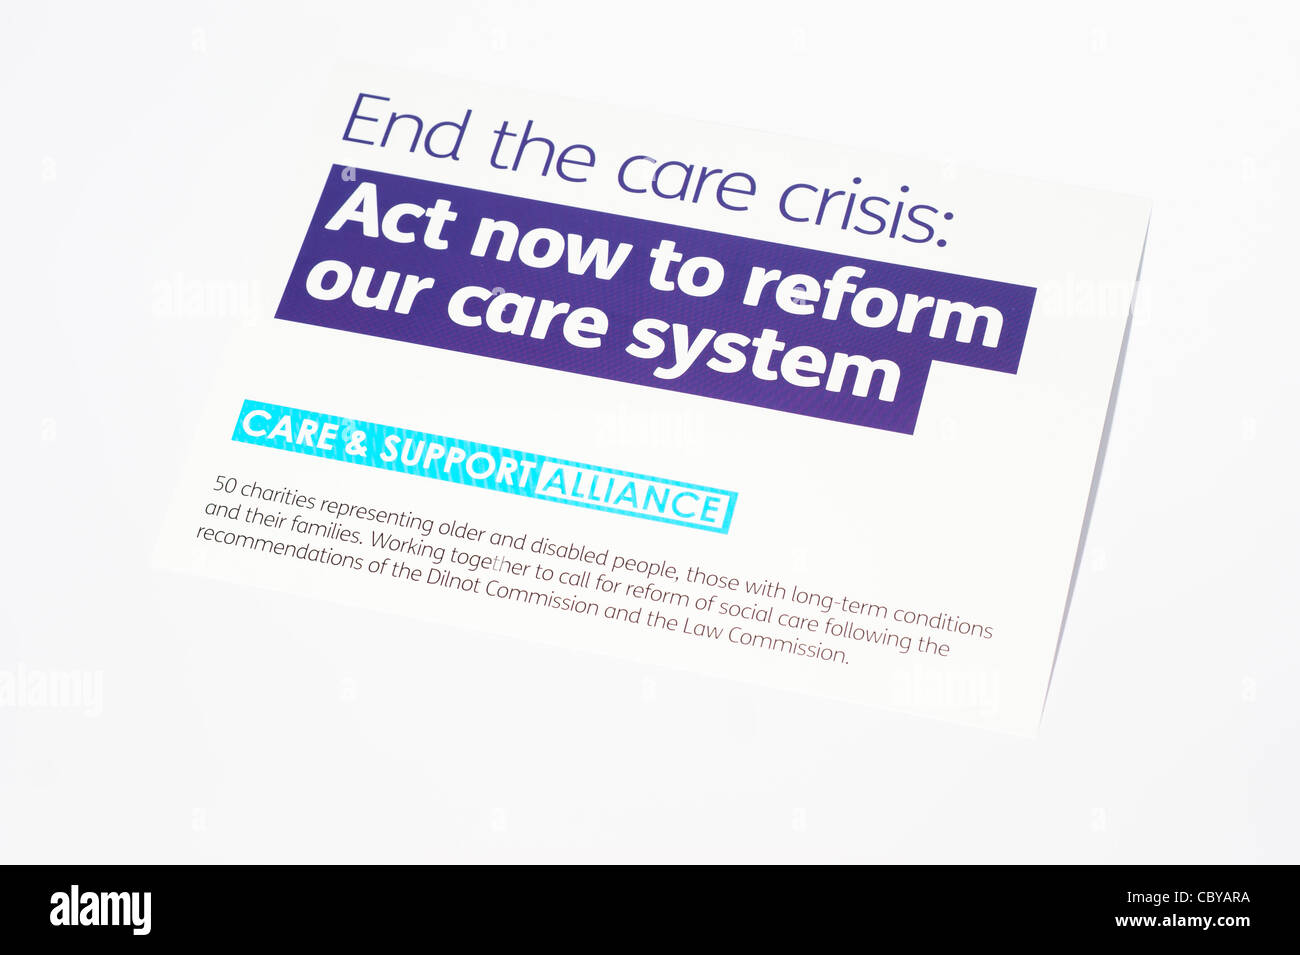 Form for writing to MP to campaign for a better system & rights for older & disabled people - Stock Image